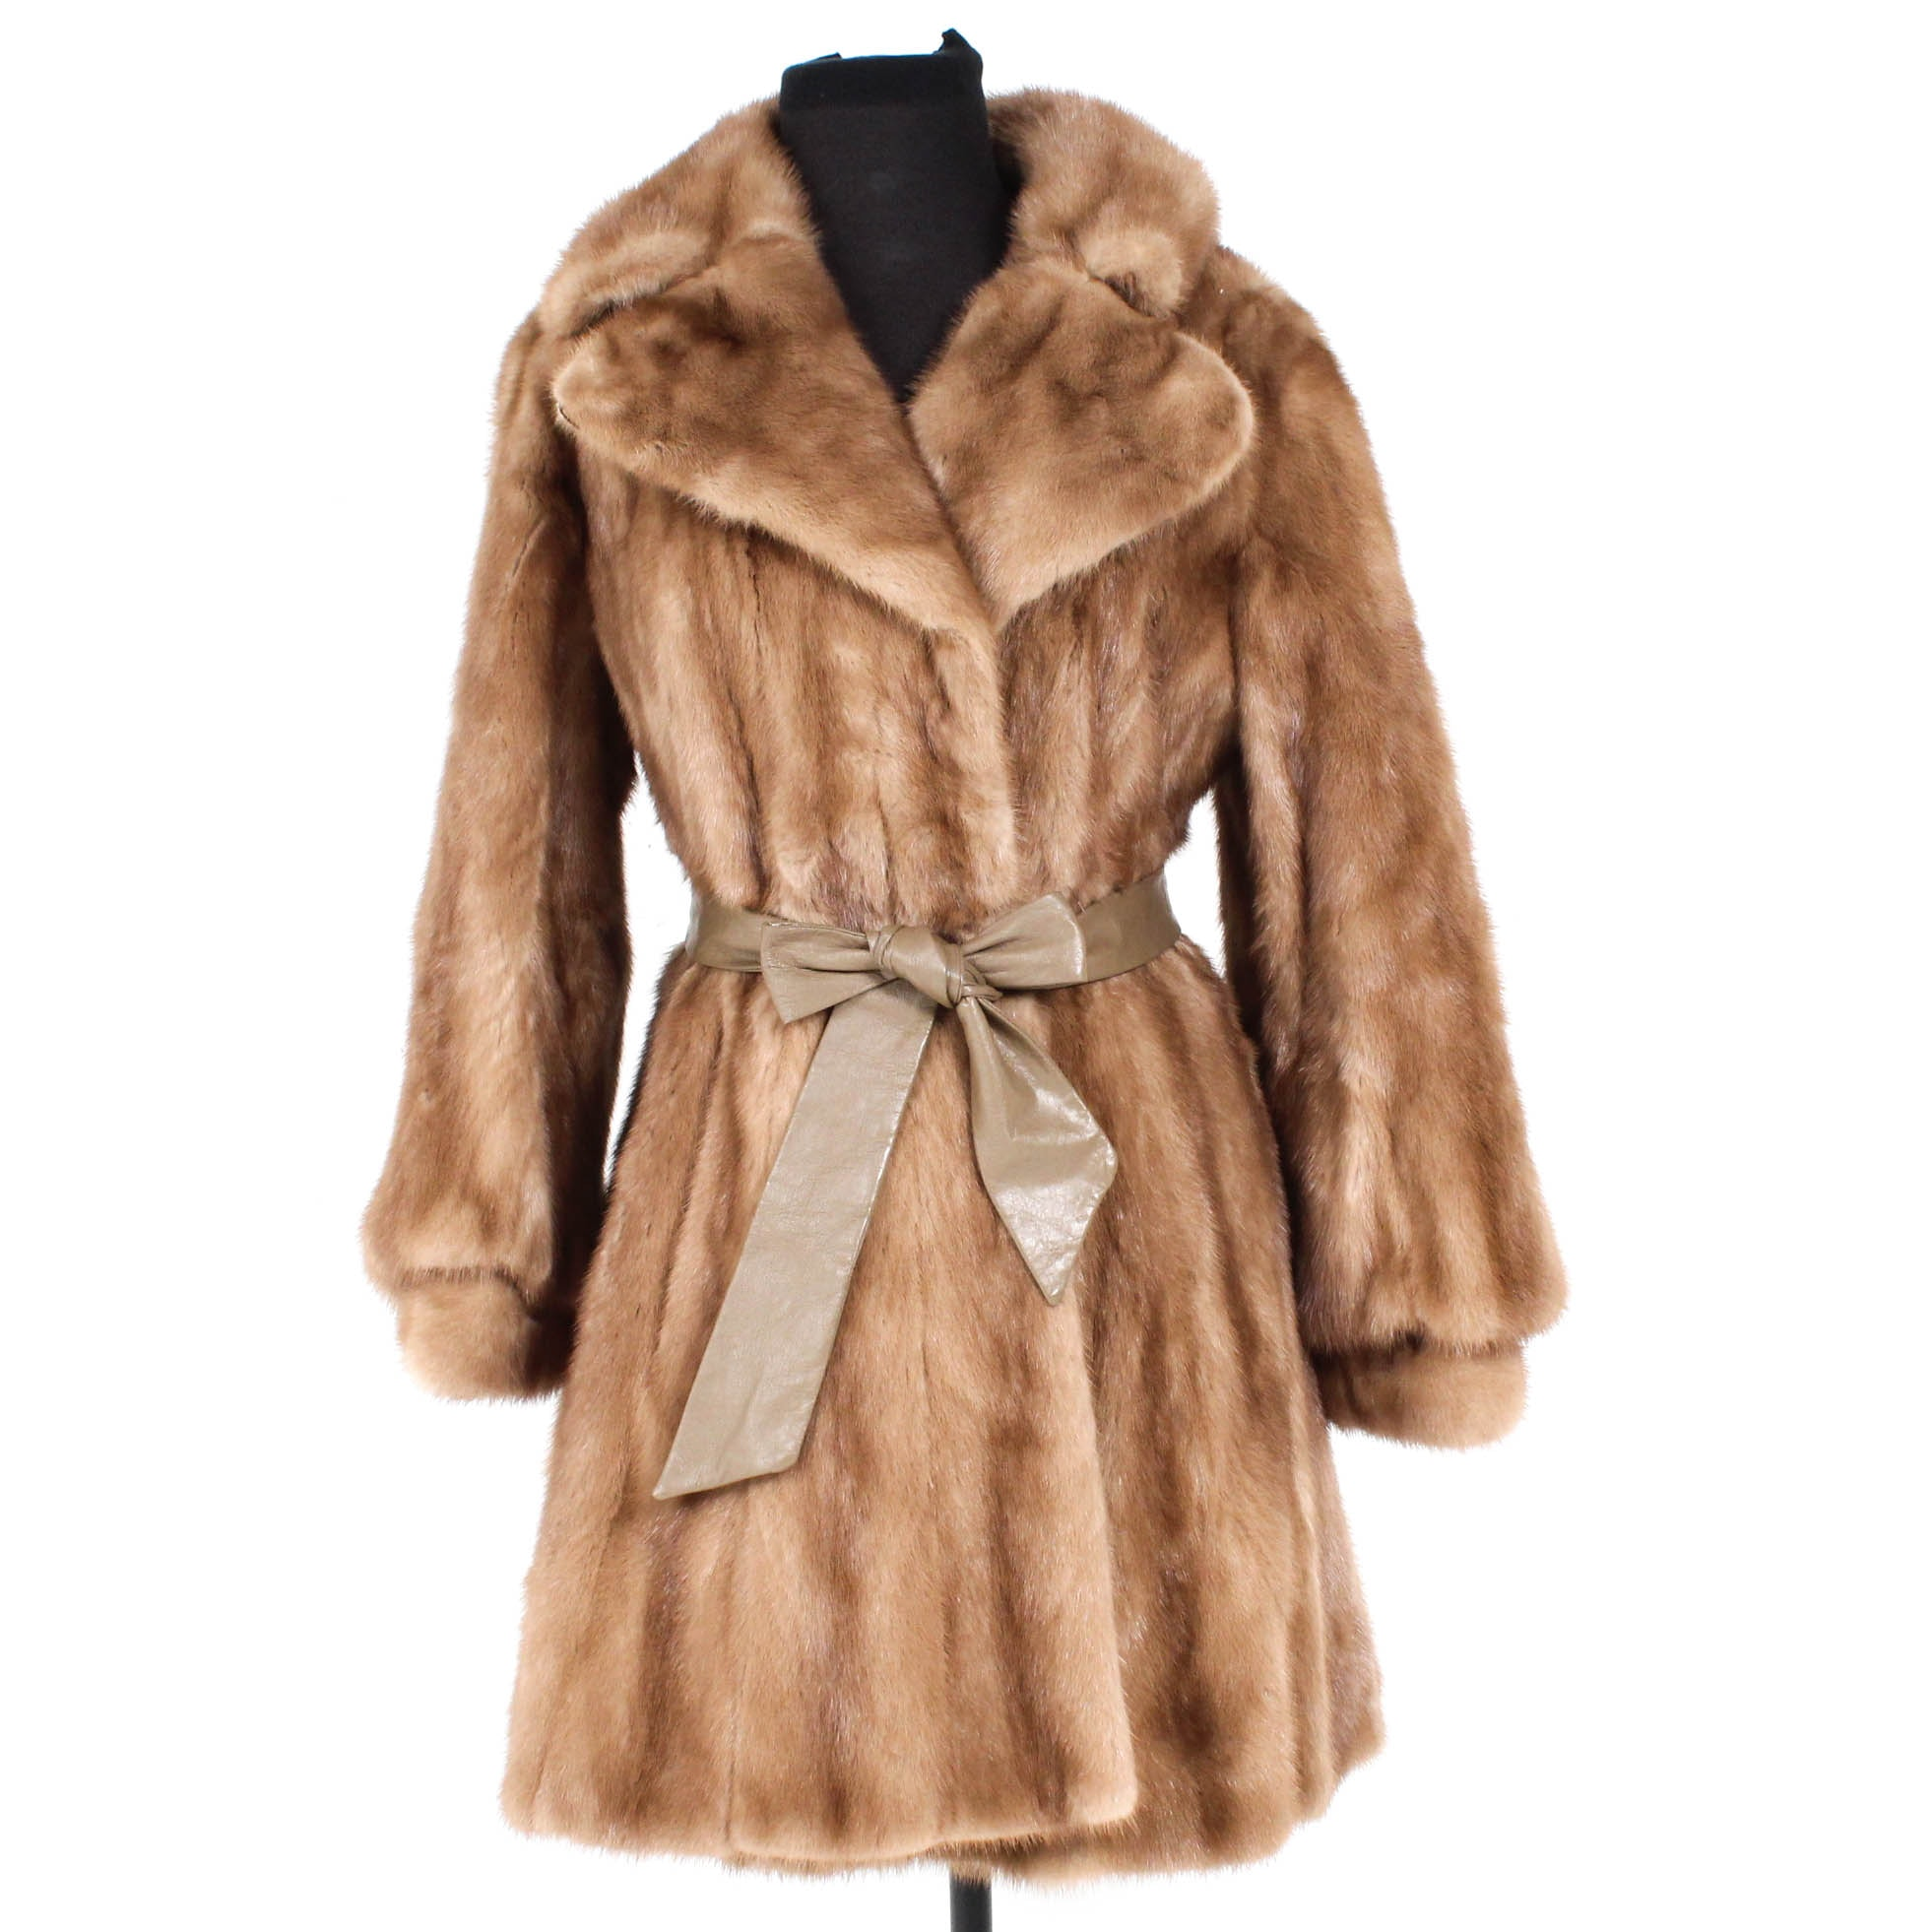 Vintage Autumn Haze Mink Fur Coat by L. Strauss for Ronley